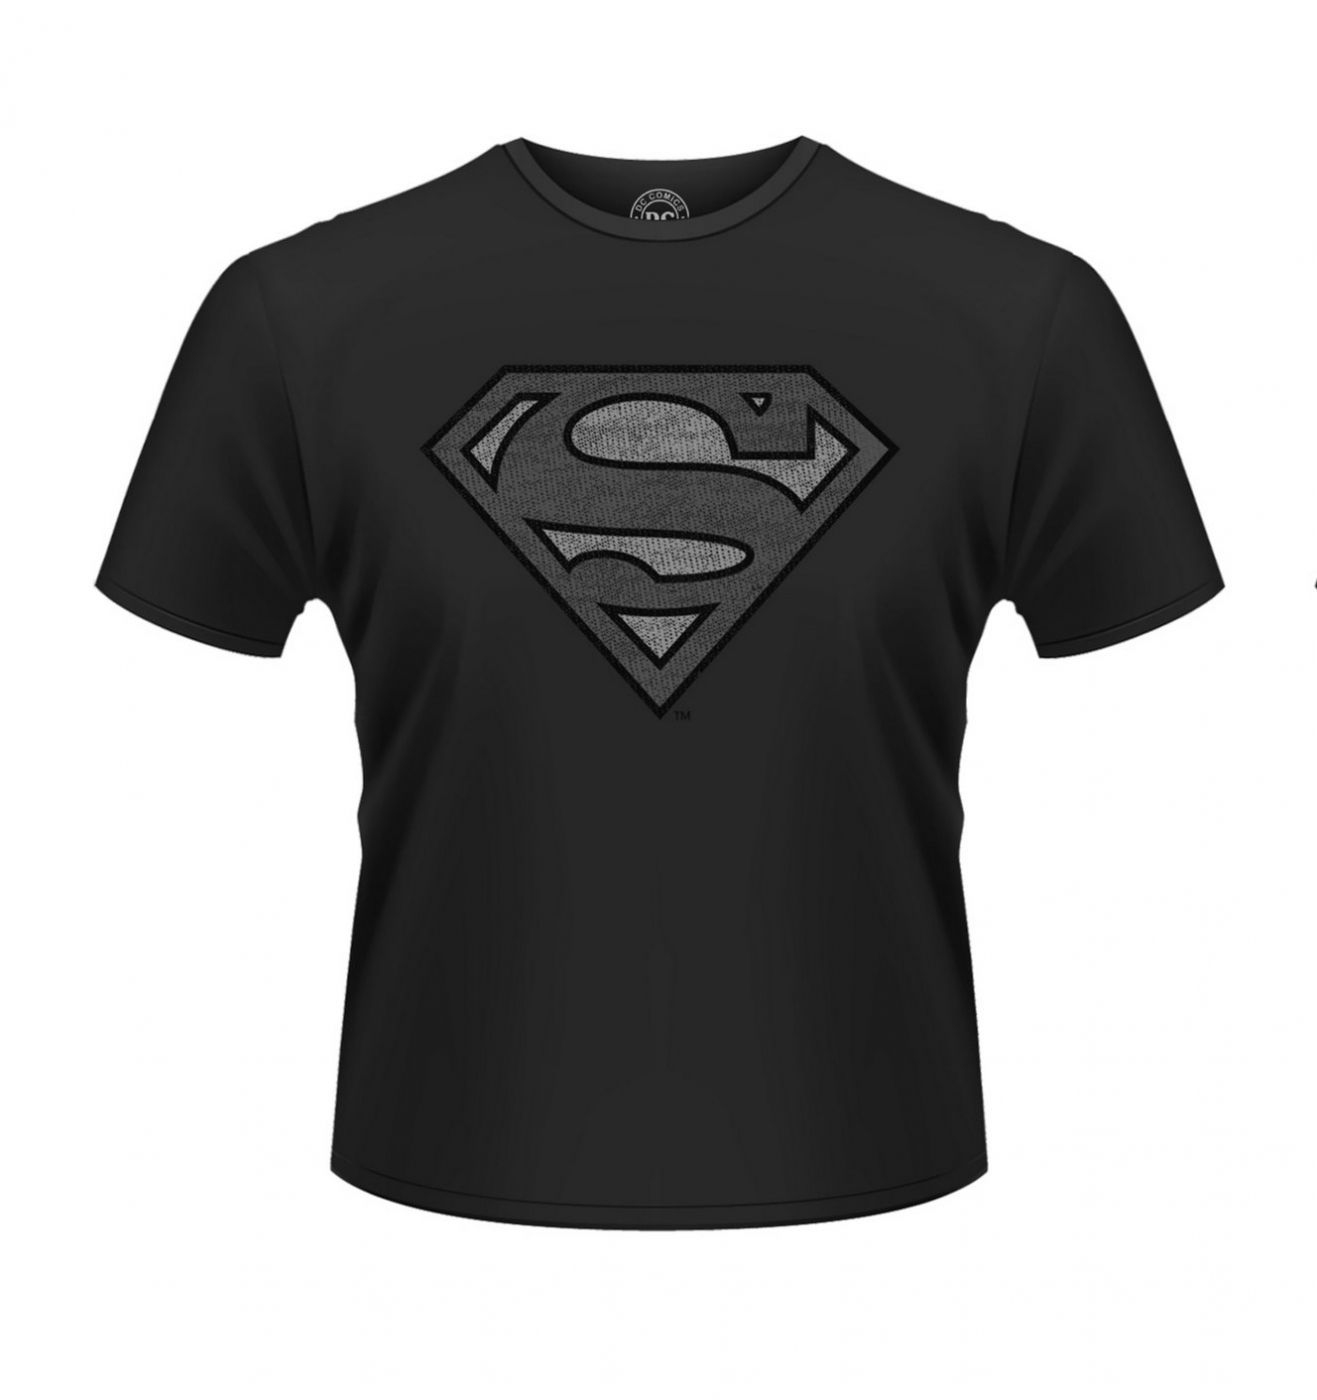 OFFICIAL Vintage Superman men's t-shirt